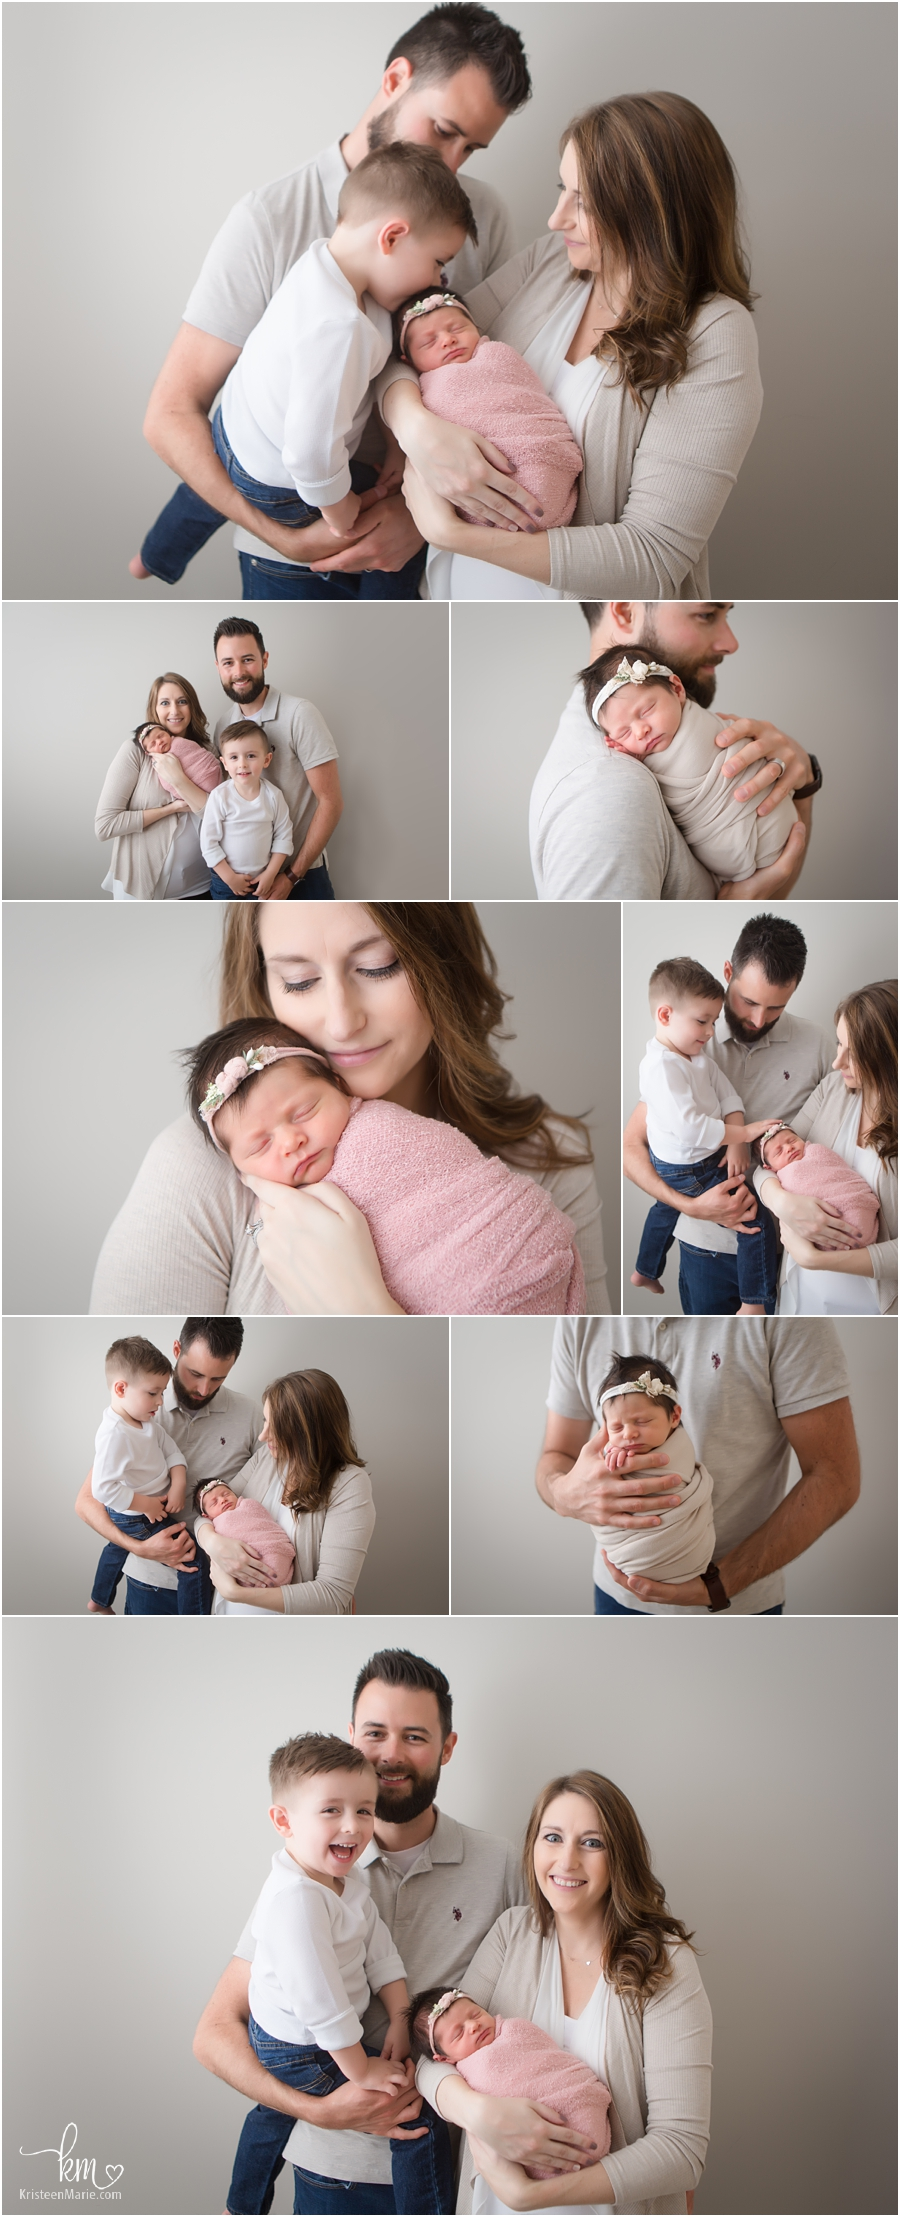 Indianapolis family photography - newborn pictures with family - family poses